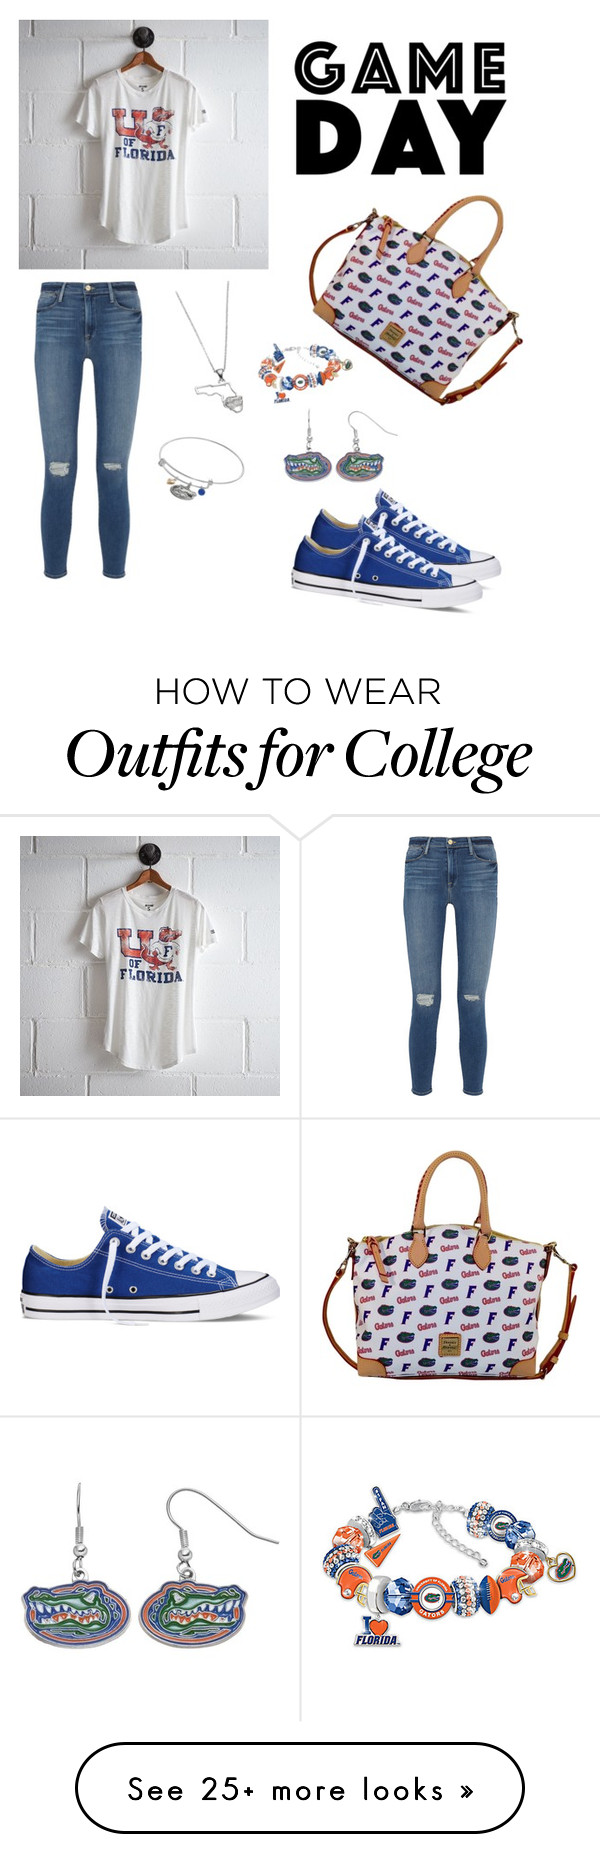 """Game Day!  Go Gators!"" by iz101 on Polyvore featuring American Eagle Outfitters, Frame Denim, Dooney & Bourke, Dayna U, The Bradford Exchange, Fiora and Converse"